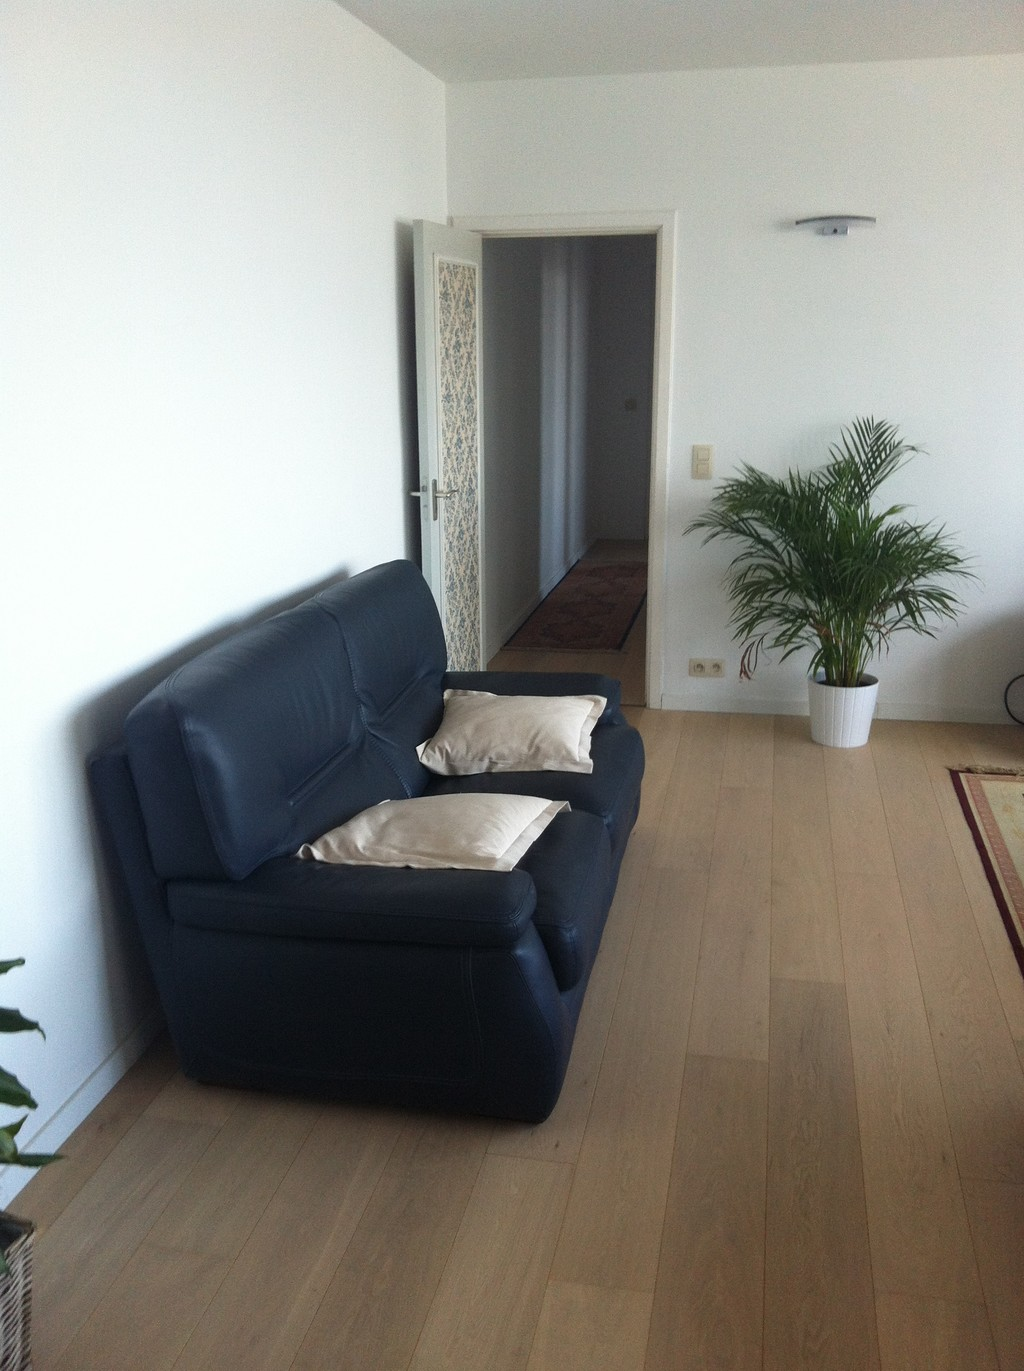 2 Bedroom Apartments For Rent In Staten Island: 2-bedroom Apartment Near European Instutitions (Madou